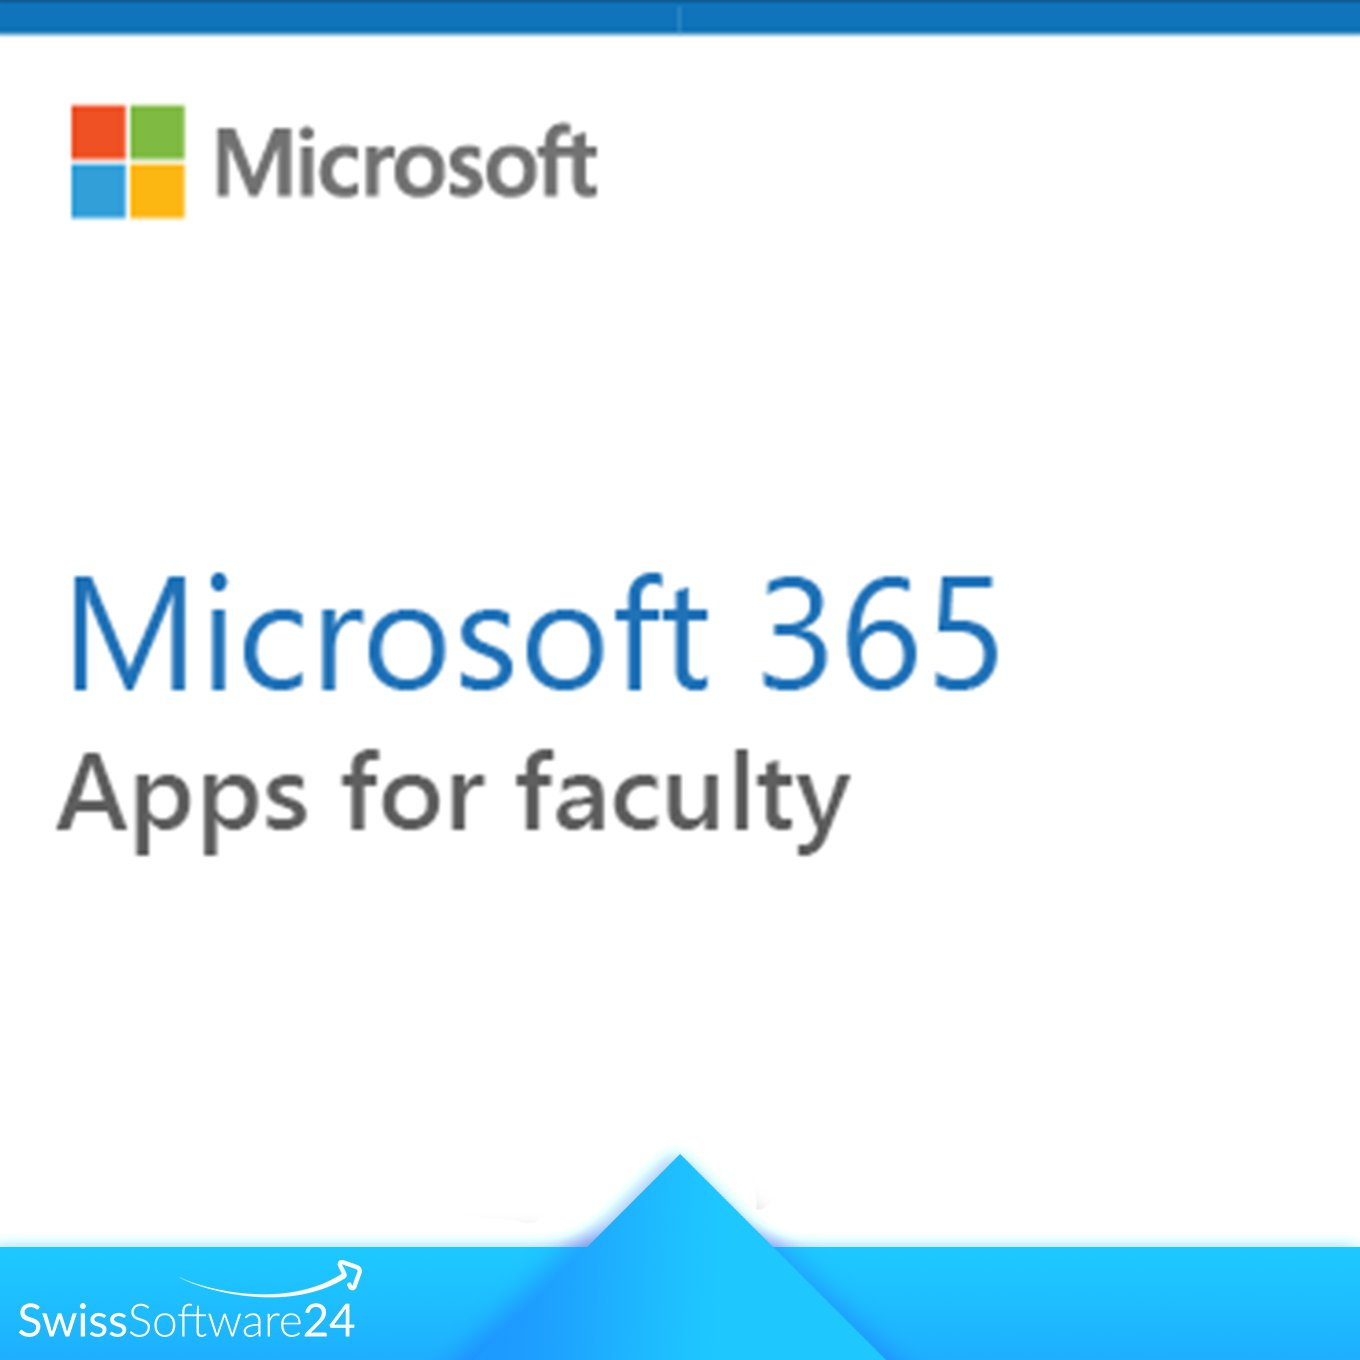 Microsoft 365 Apps for faculty